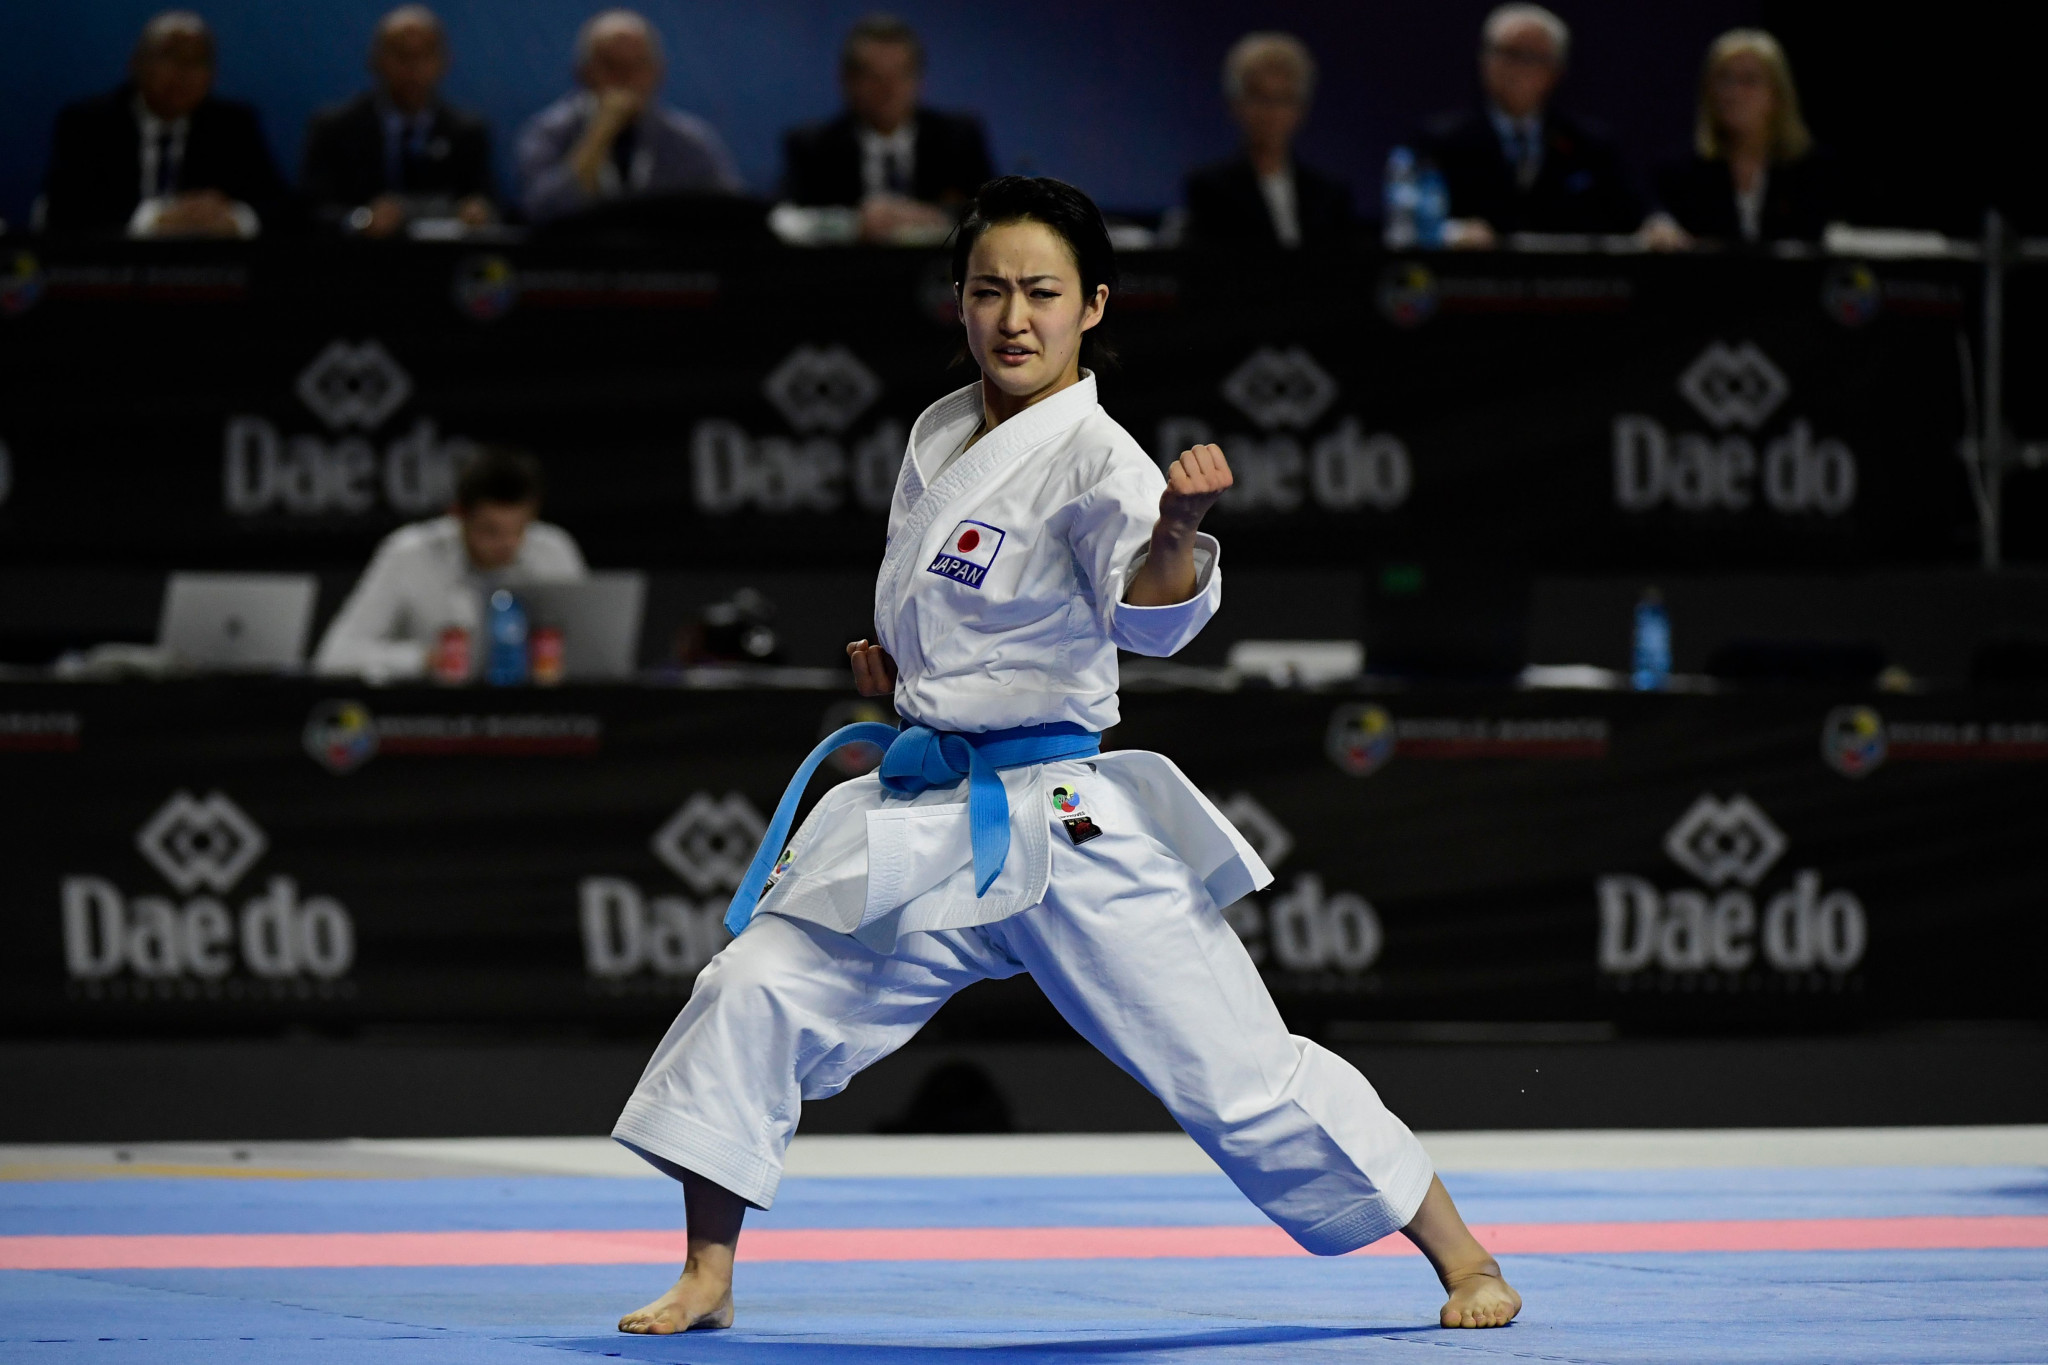 Japan's Kiyou Shimizu won the female kata at the WKF Karate1-Premier League in Rabat ©Getty Images